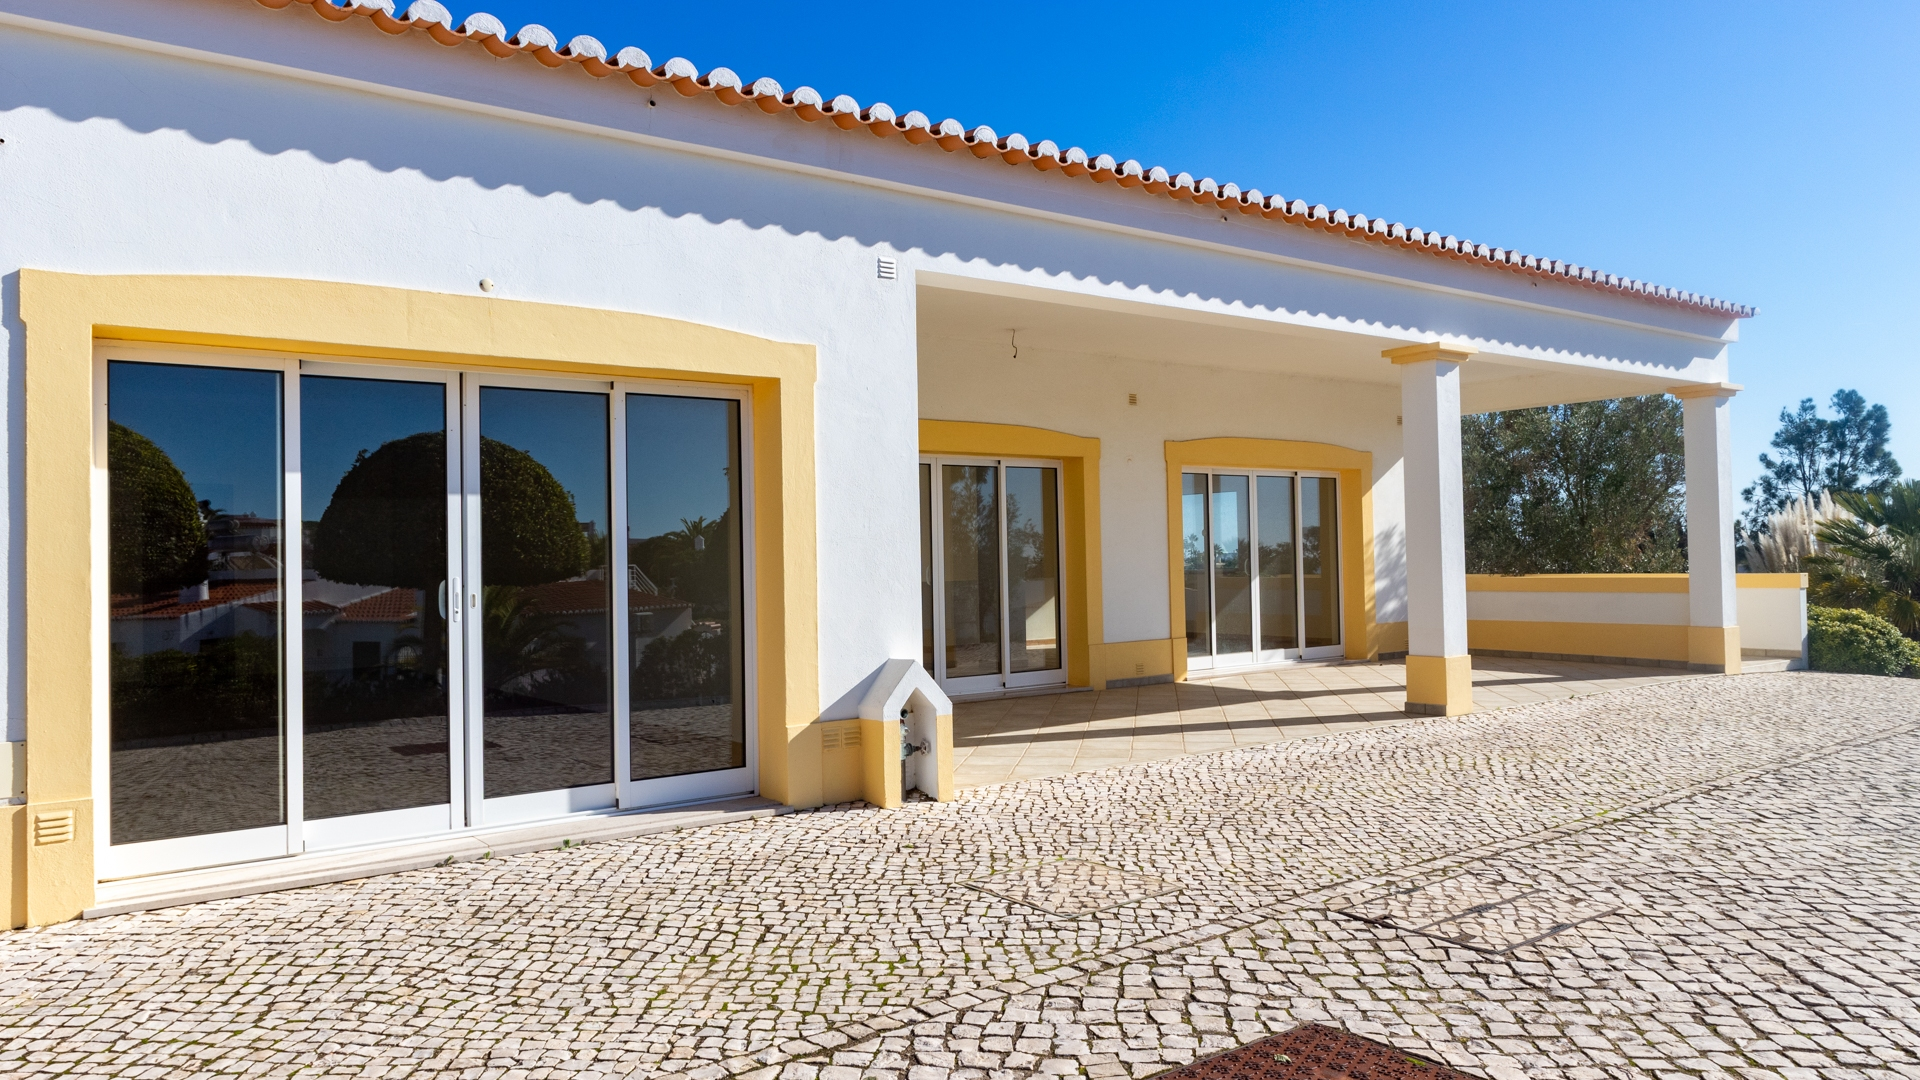 Commercial property for sale, restaurant, shop or beauticians in Vale do Milho, Carvoeiro | VM1581 The property is located on the popular golf resort of Vale do Milho and has the advantage of a flexible commercial licence. For example, a Restaurant, Shop or Beauticians, this is an ideal opportunity to start a fresh business.